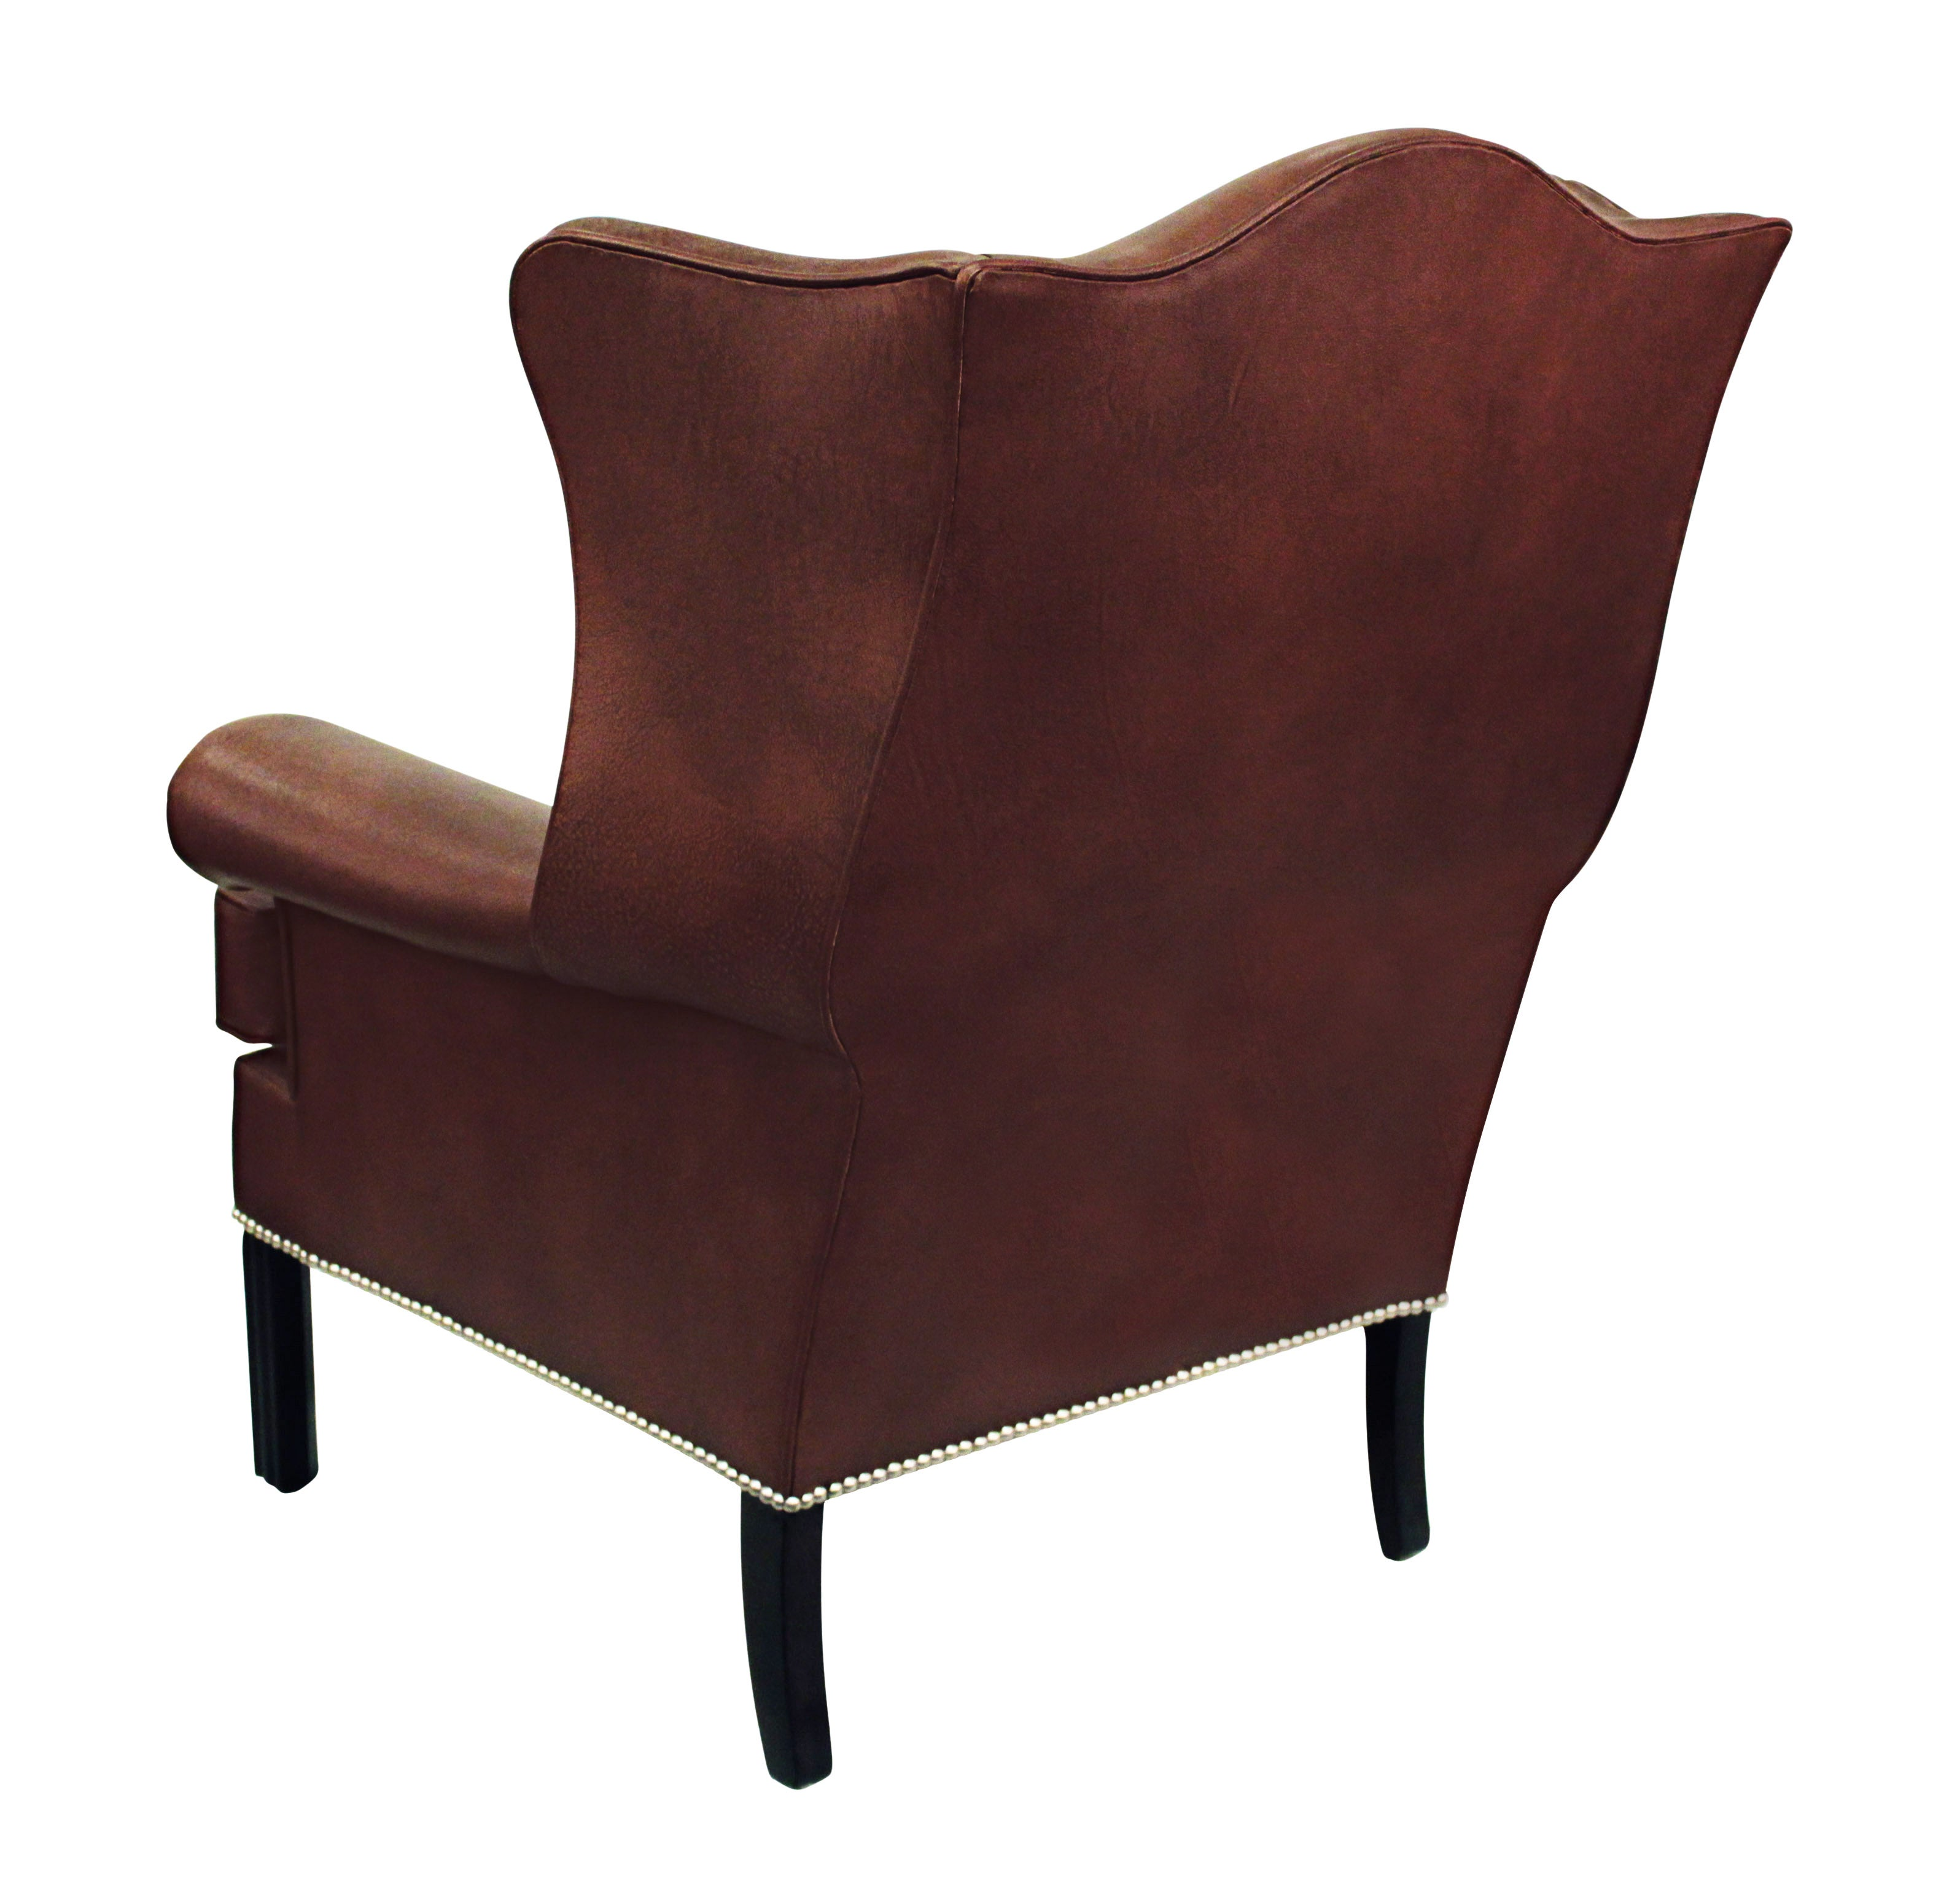 Small Club Chair Small Scale Leather Wing Chair By Edward Wormley For Dunbar